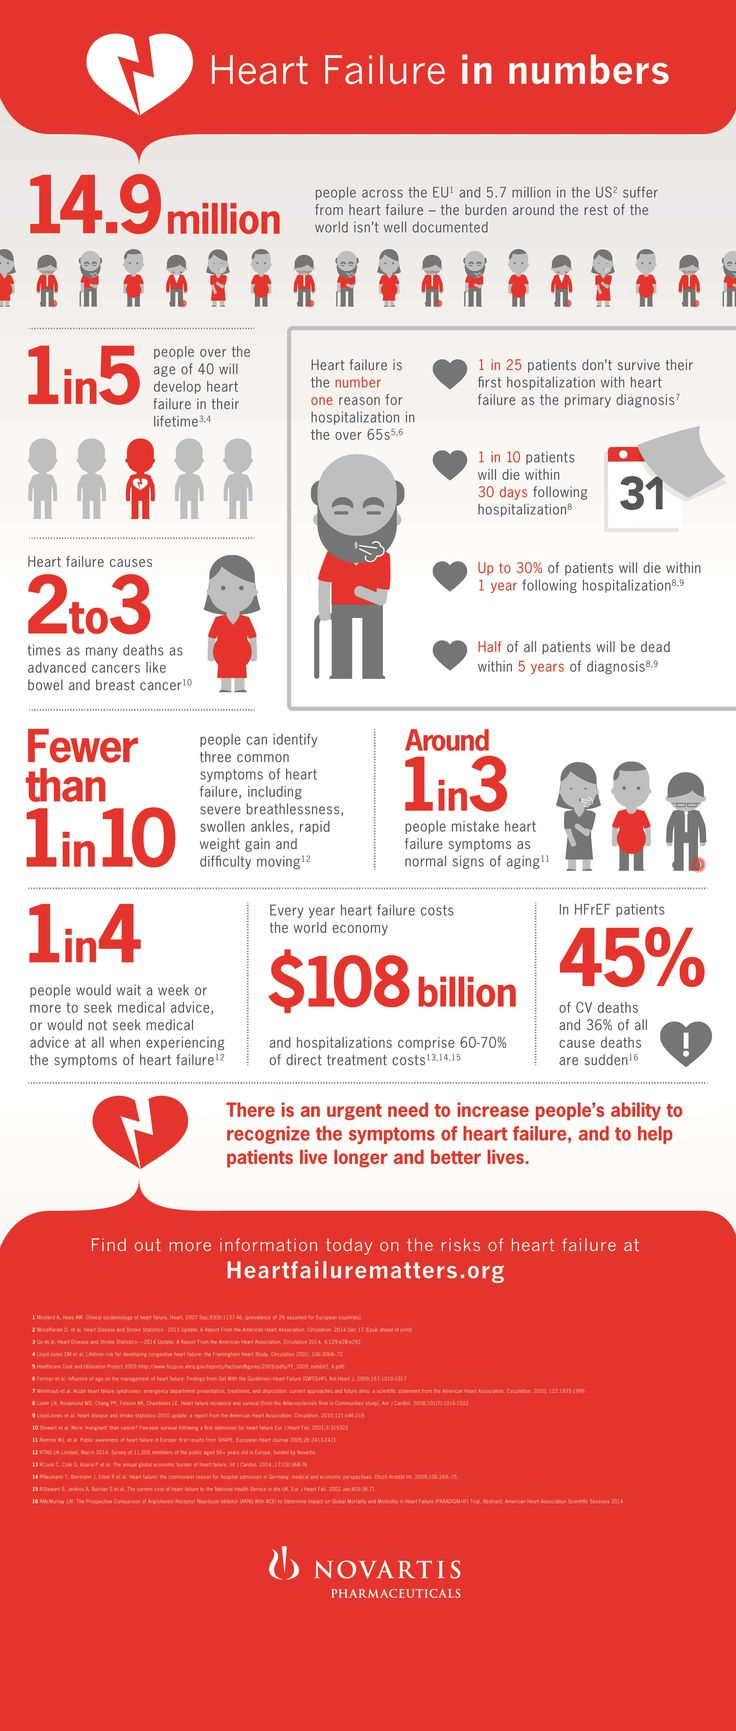 Heart failure is one of the most rapidly growing #cardiovascular diseases. Learn more about #heartfailure in this infographic.